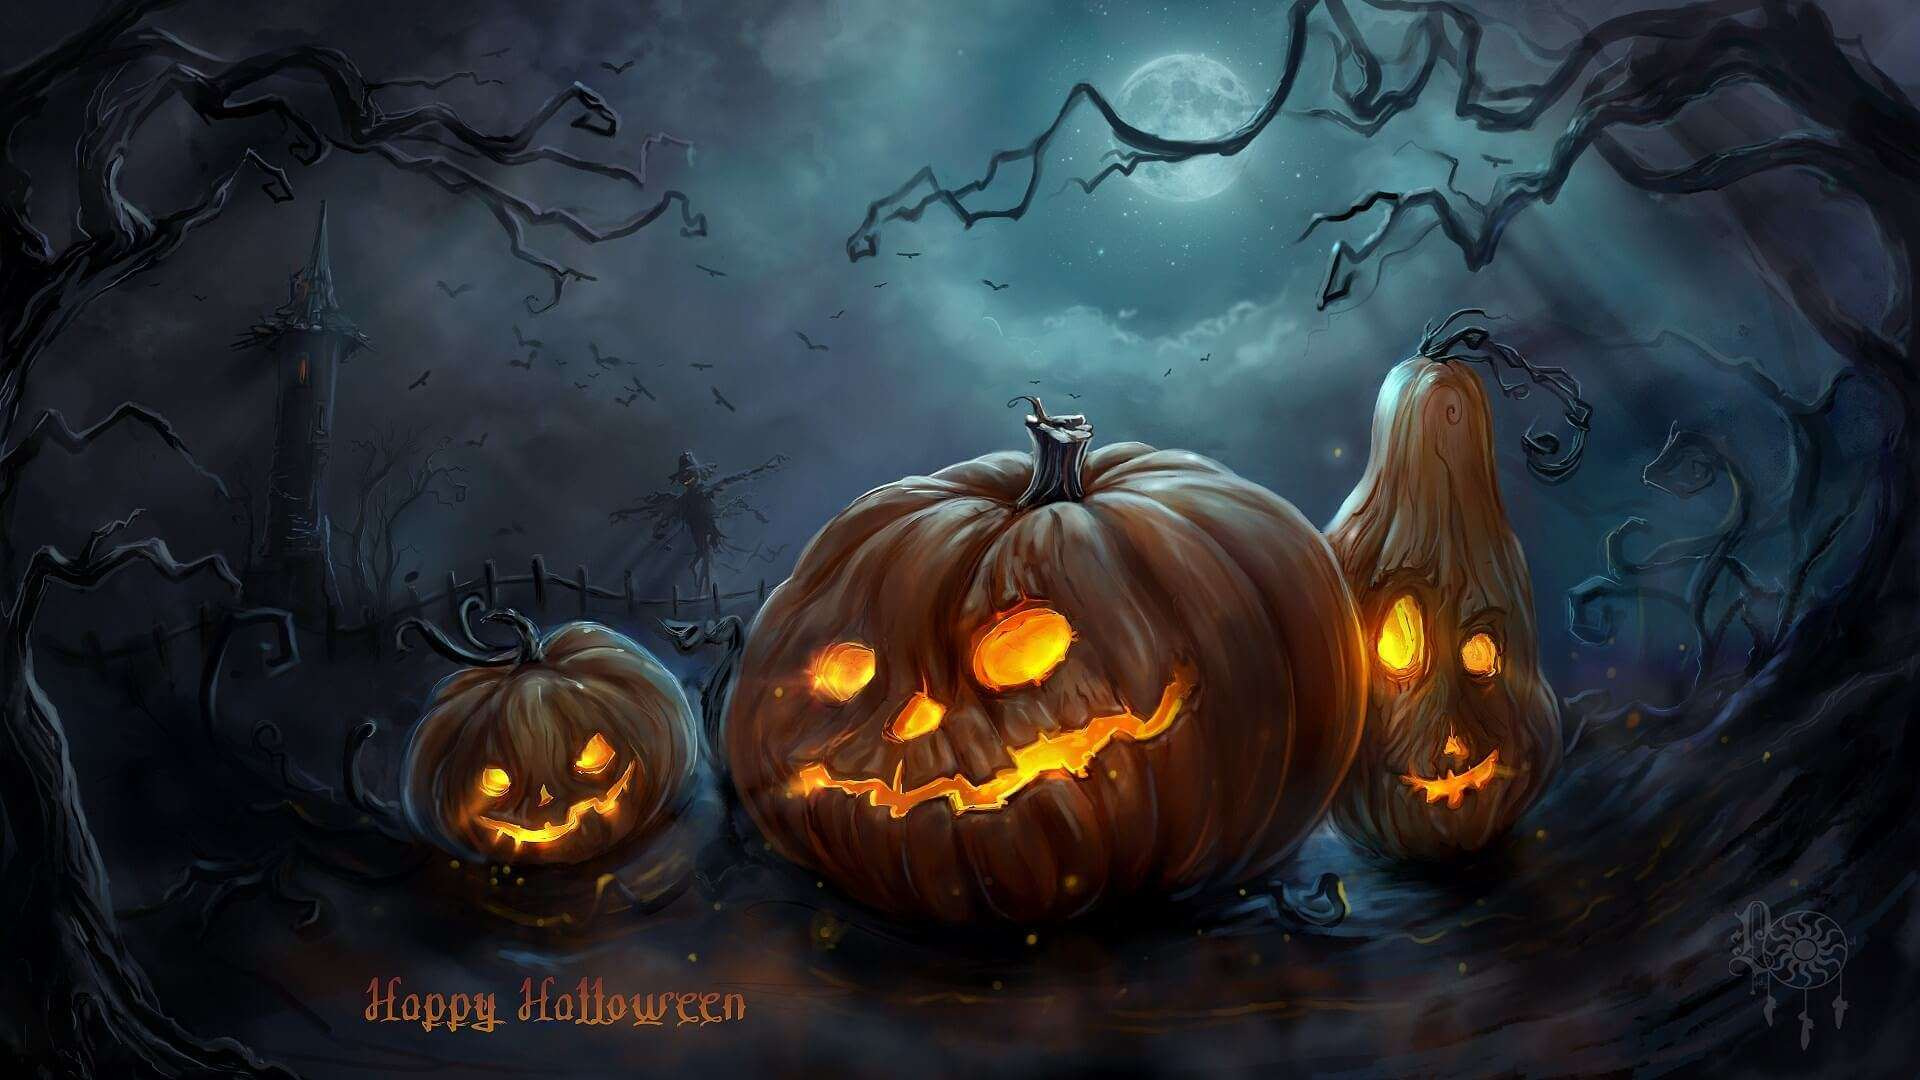 How to Share Halloween Photos with Your Friends and Family